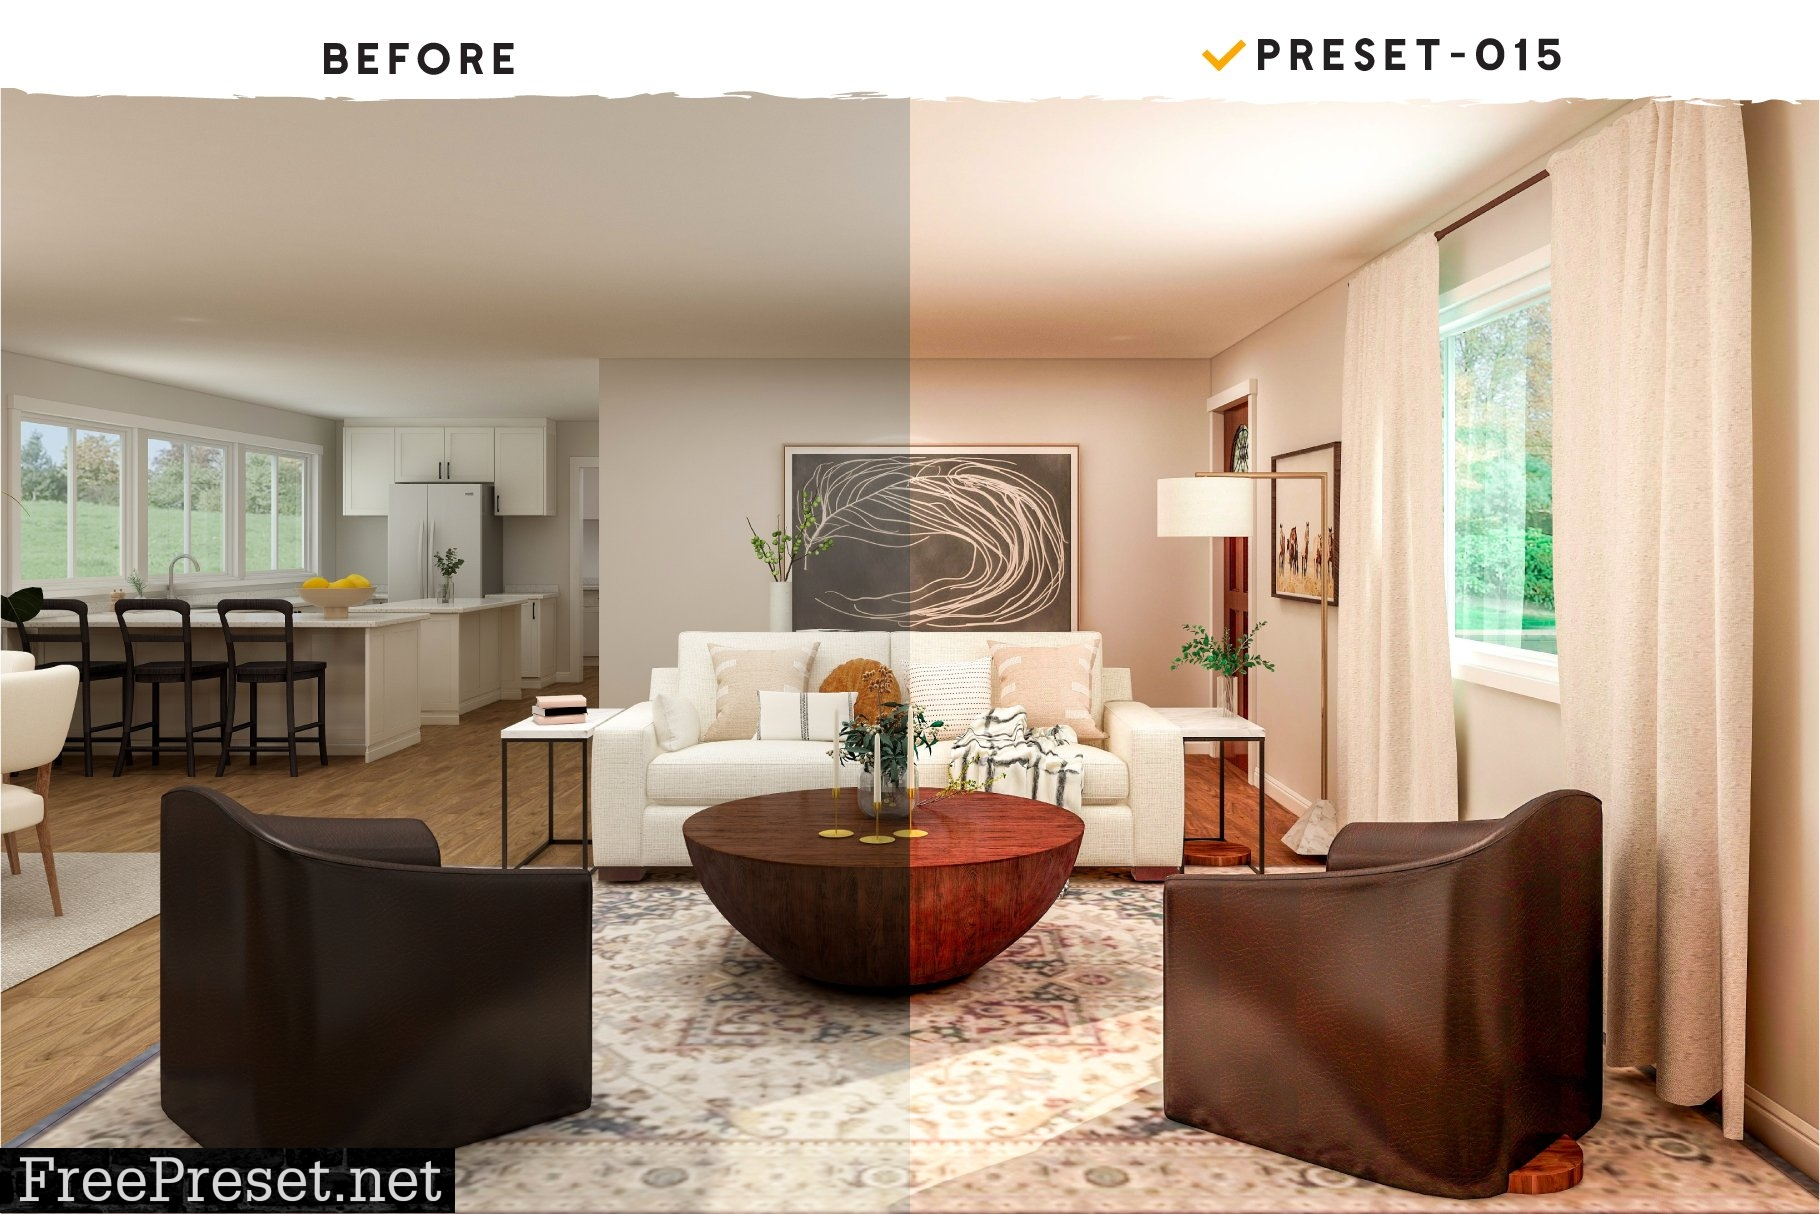 Room Decor Presets & Actions 6225933